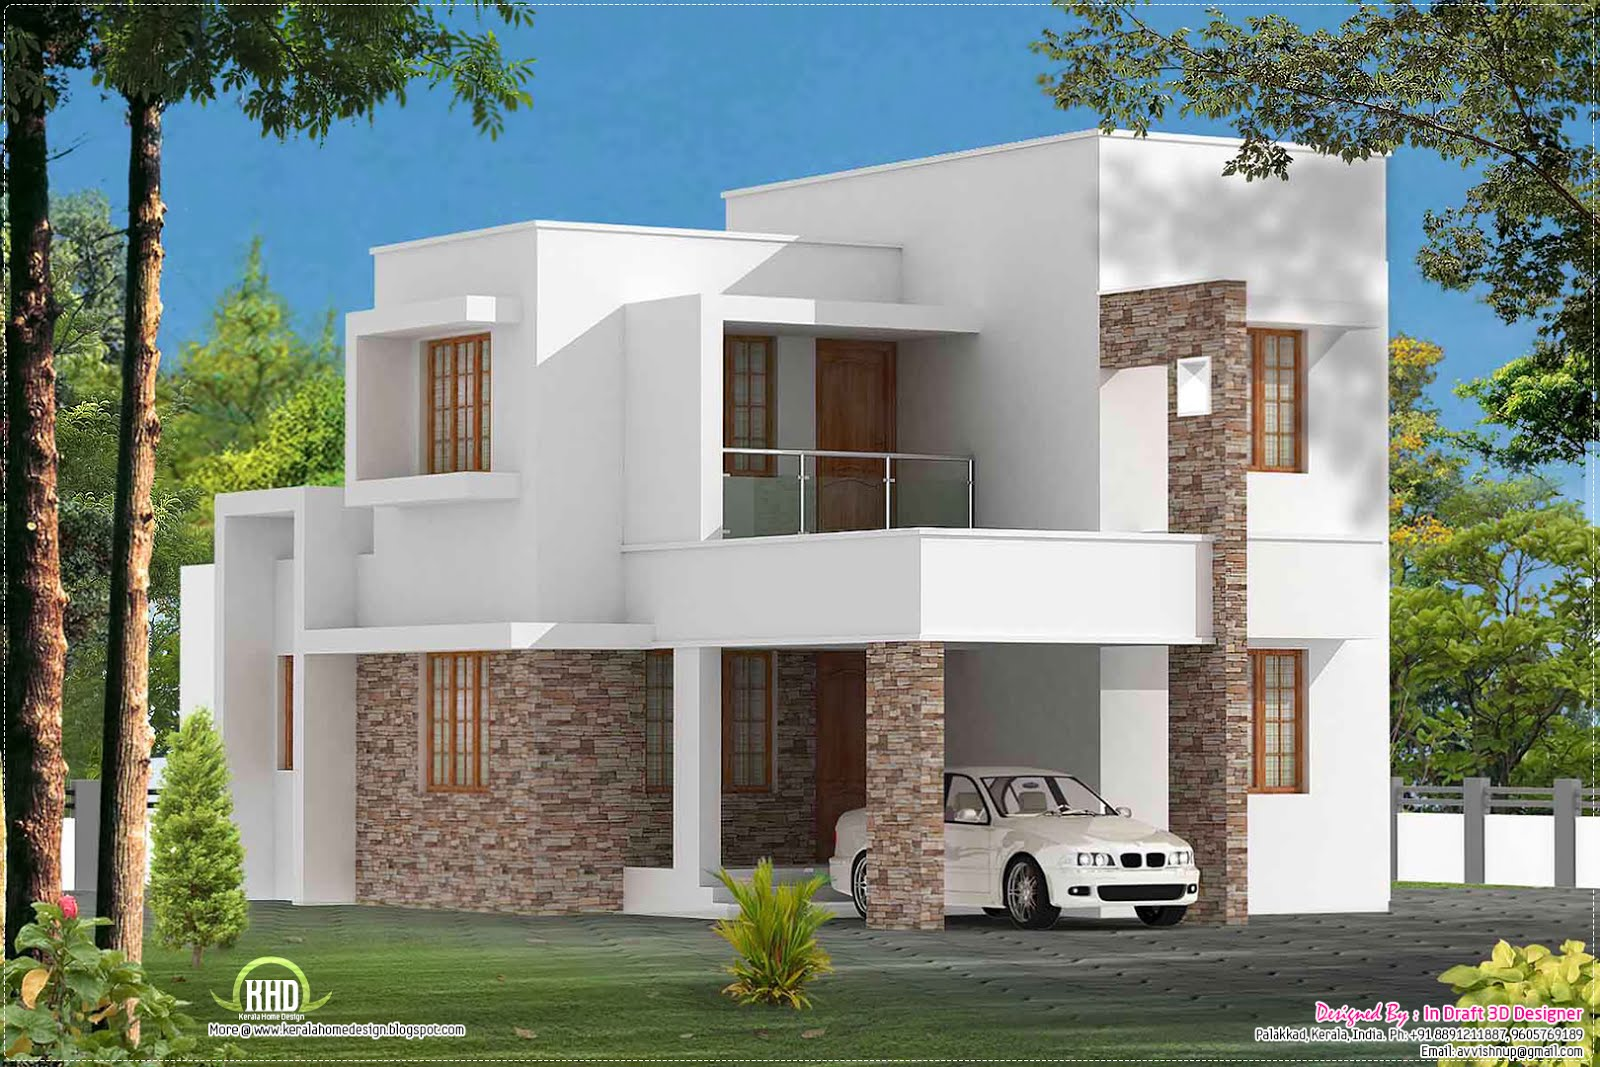 Simple 3 bed room contemporary villa kerala home design Simple house designs and plans